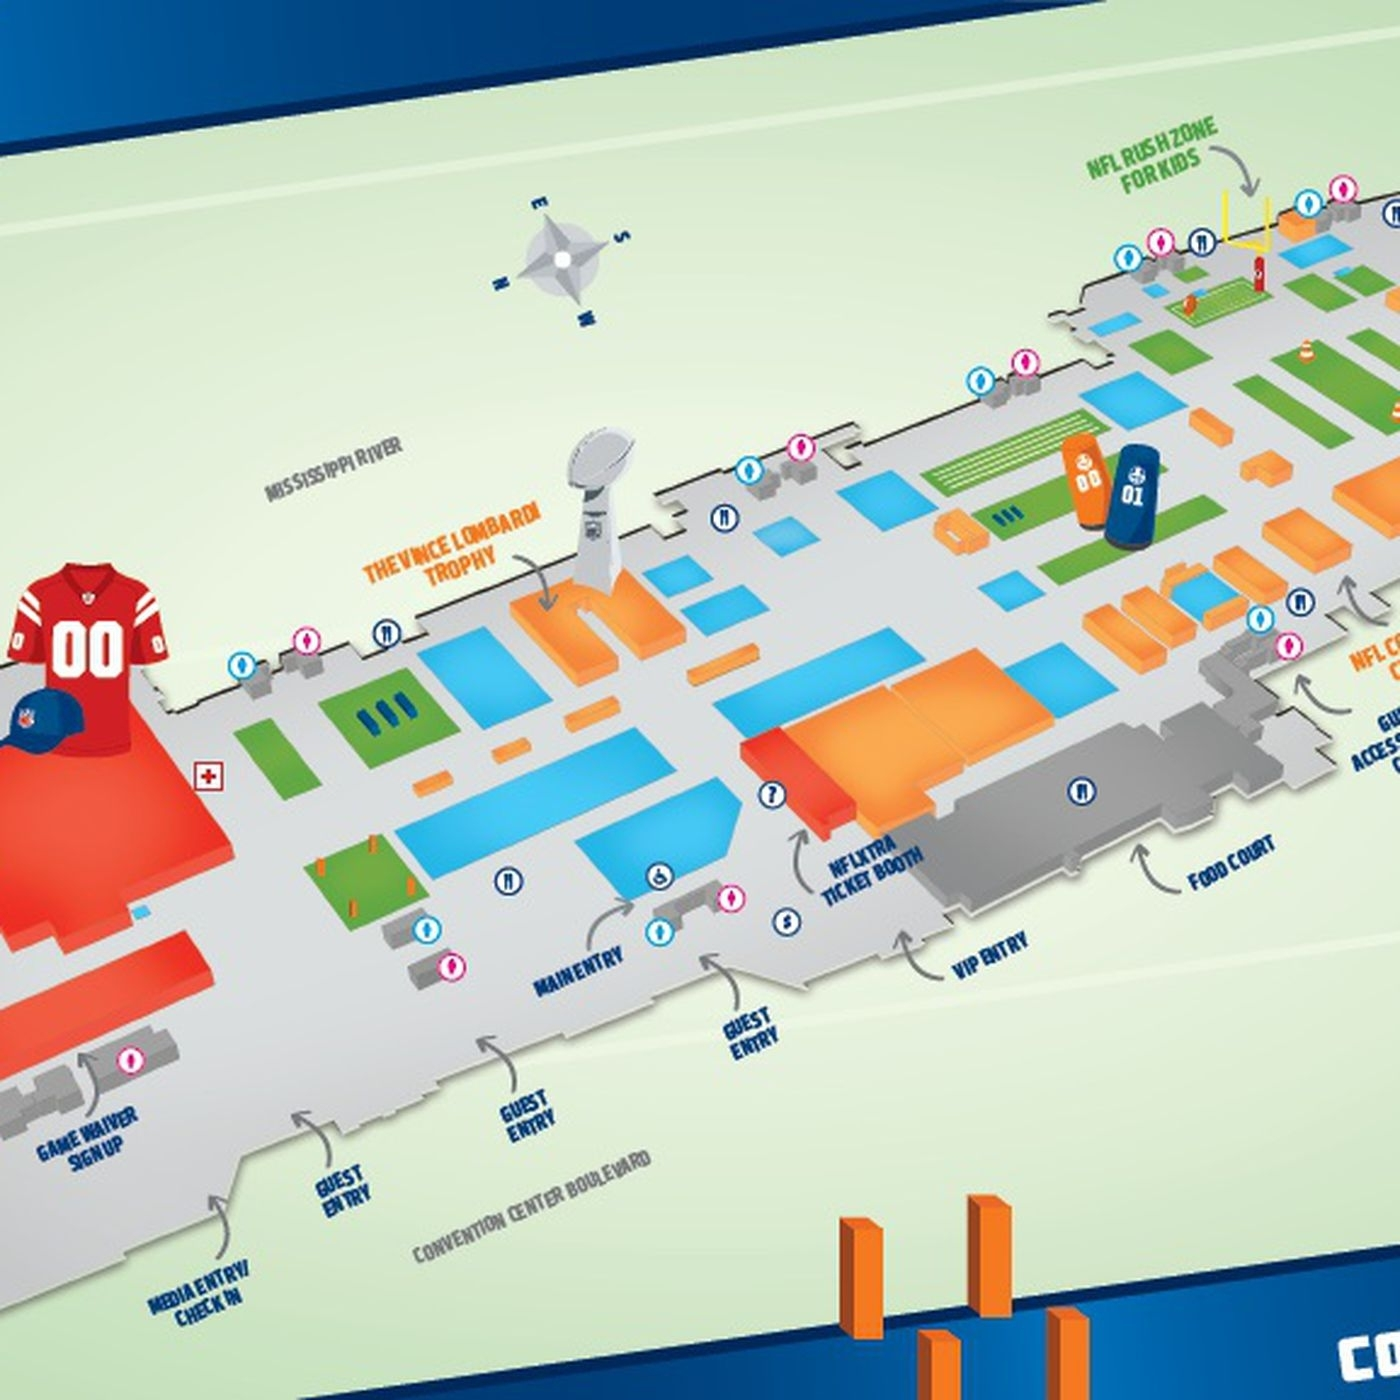 Super Bowl Xlvii: Nfl Experience Map And Attractions - Canal intended for Nfl Super Bowl Map